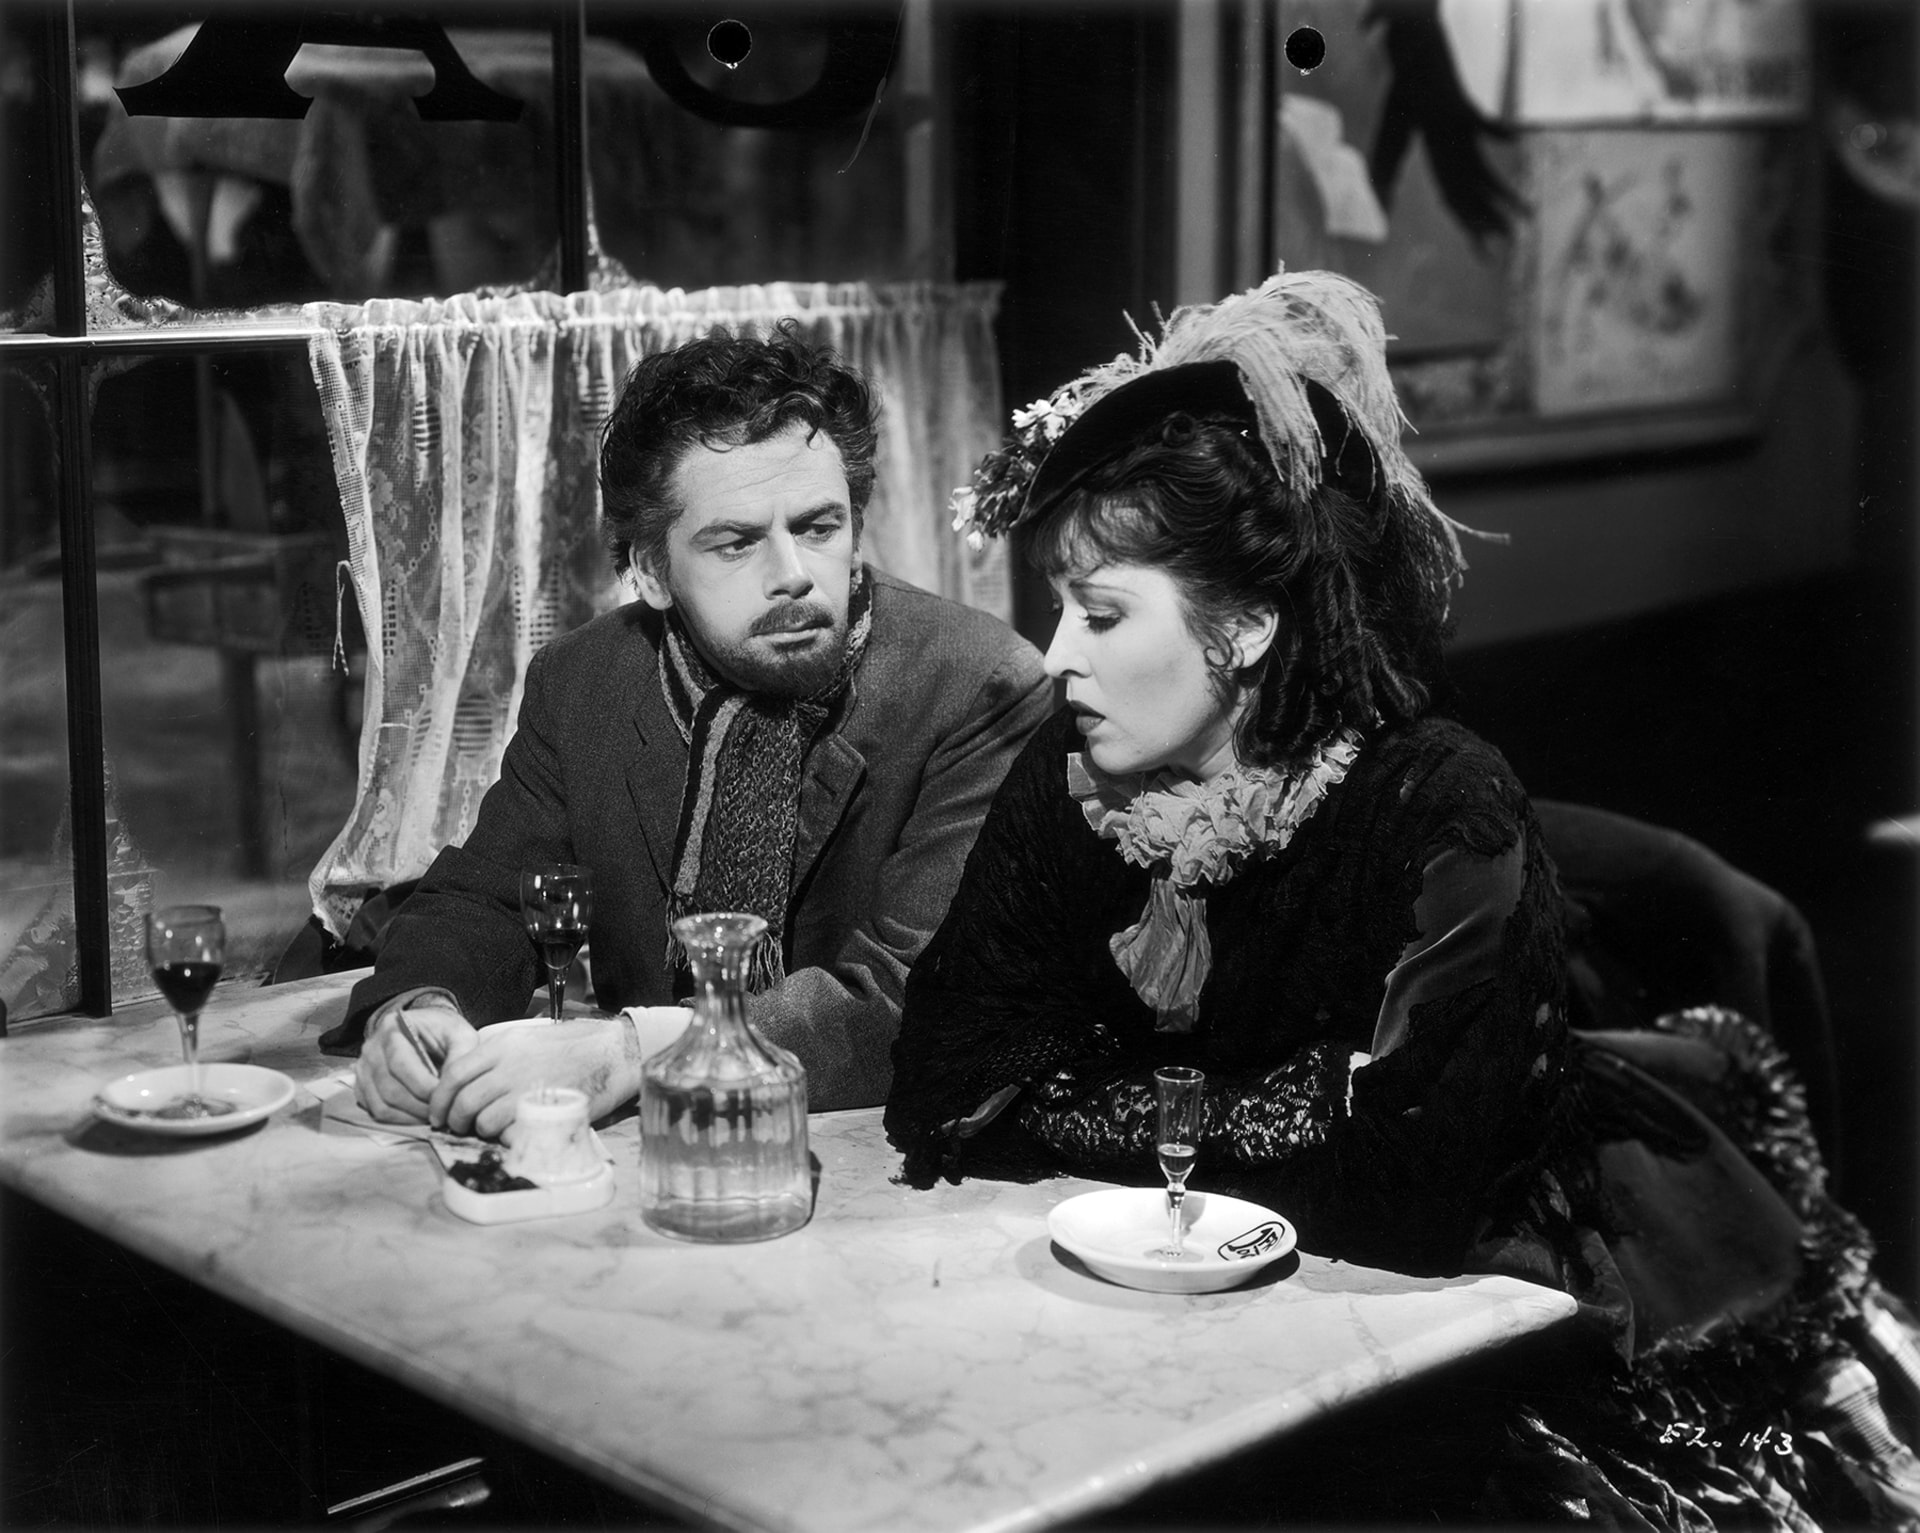 paul muni as emile zola with erin o'brien-moore as the prostitute who was the basis of Zola's bestseller, Nana.